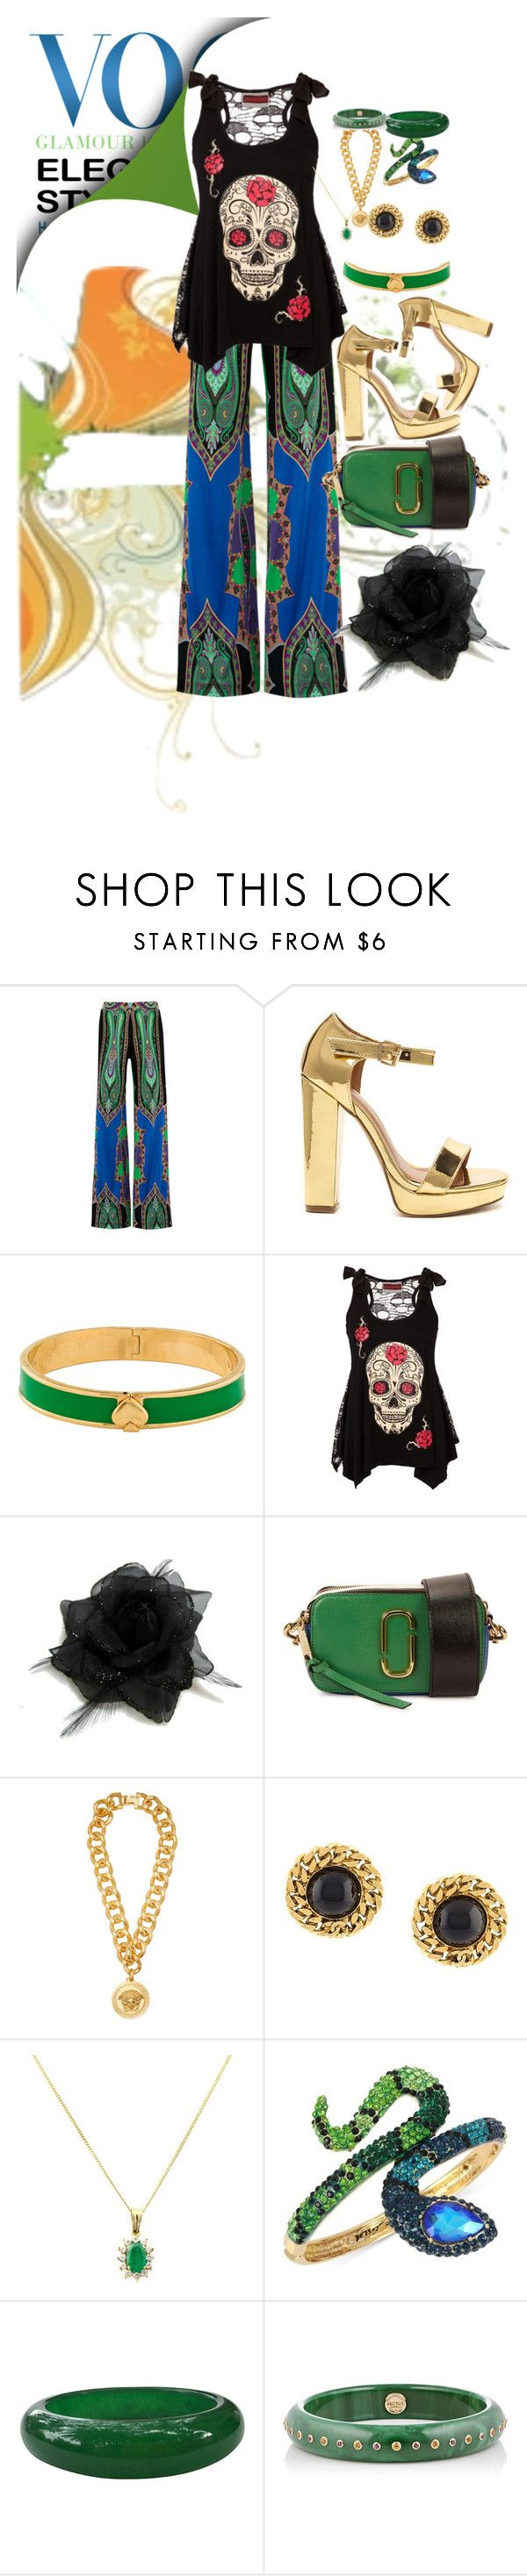 """""""Cool &colorful!"""" by diannecollier ❤ liked on Polyvore featuring Etro, Kate Spade, Marc Jacobs, Versace, Chanel, Turner & Leveridge, Betsey Johnson and Mark Davis"""